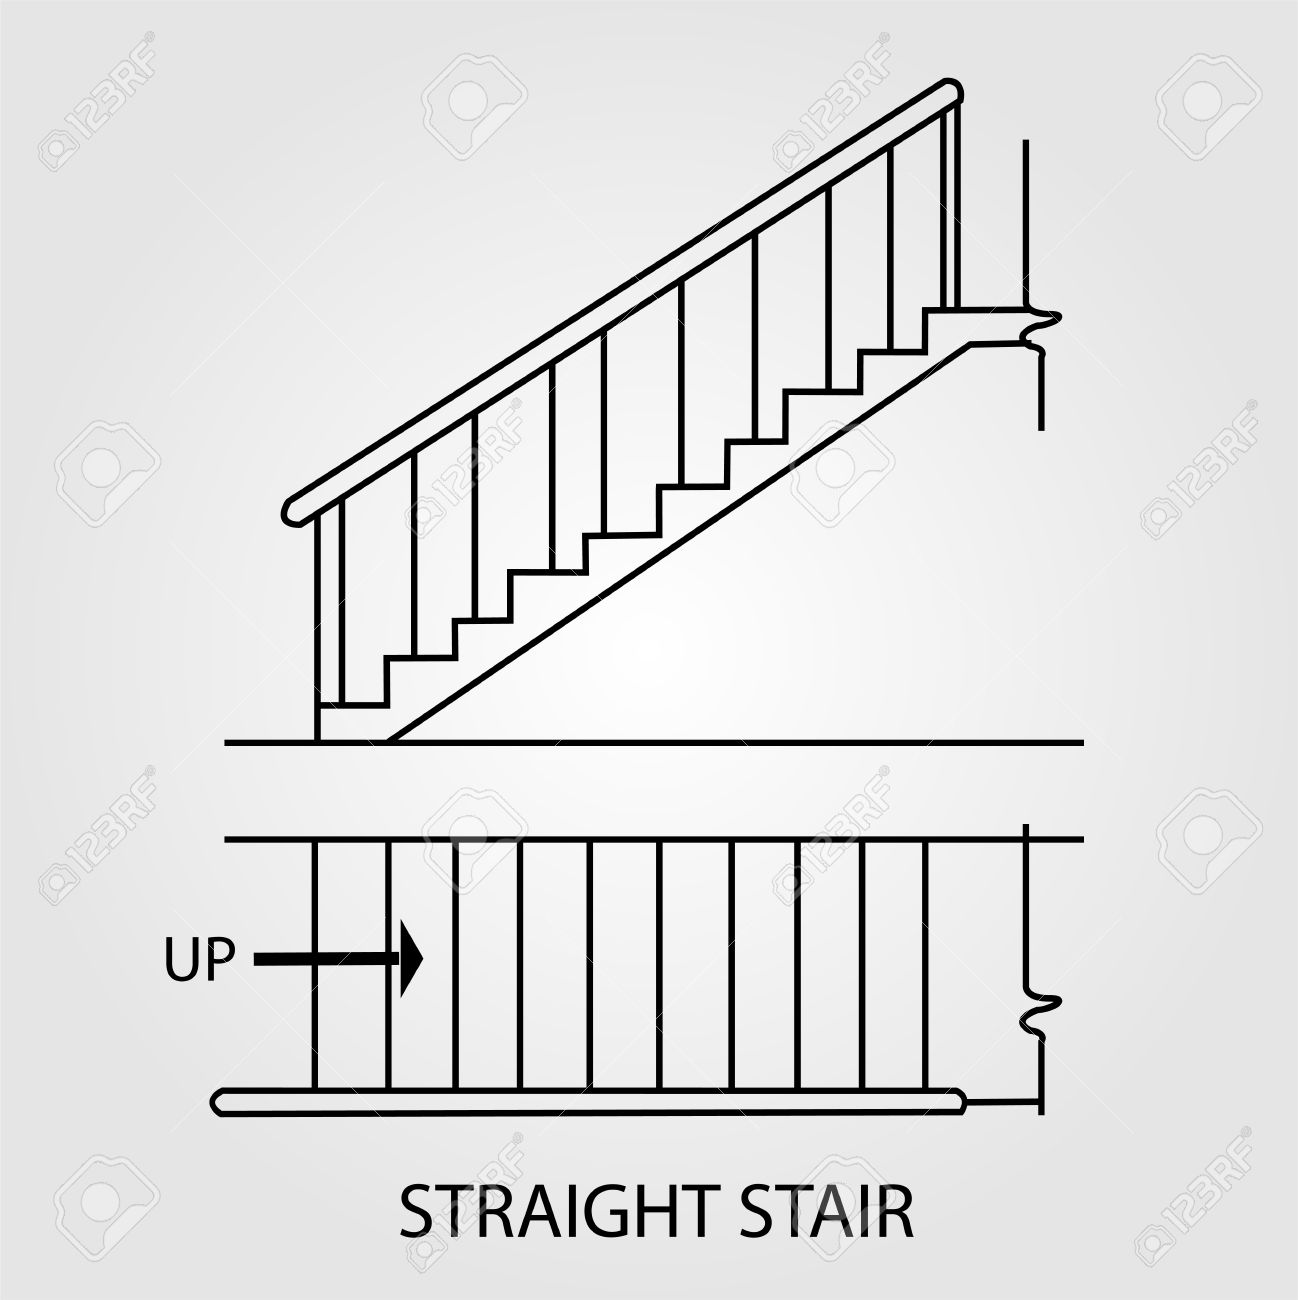 Top view and front view of a straight staircase